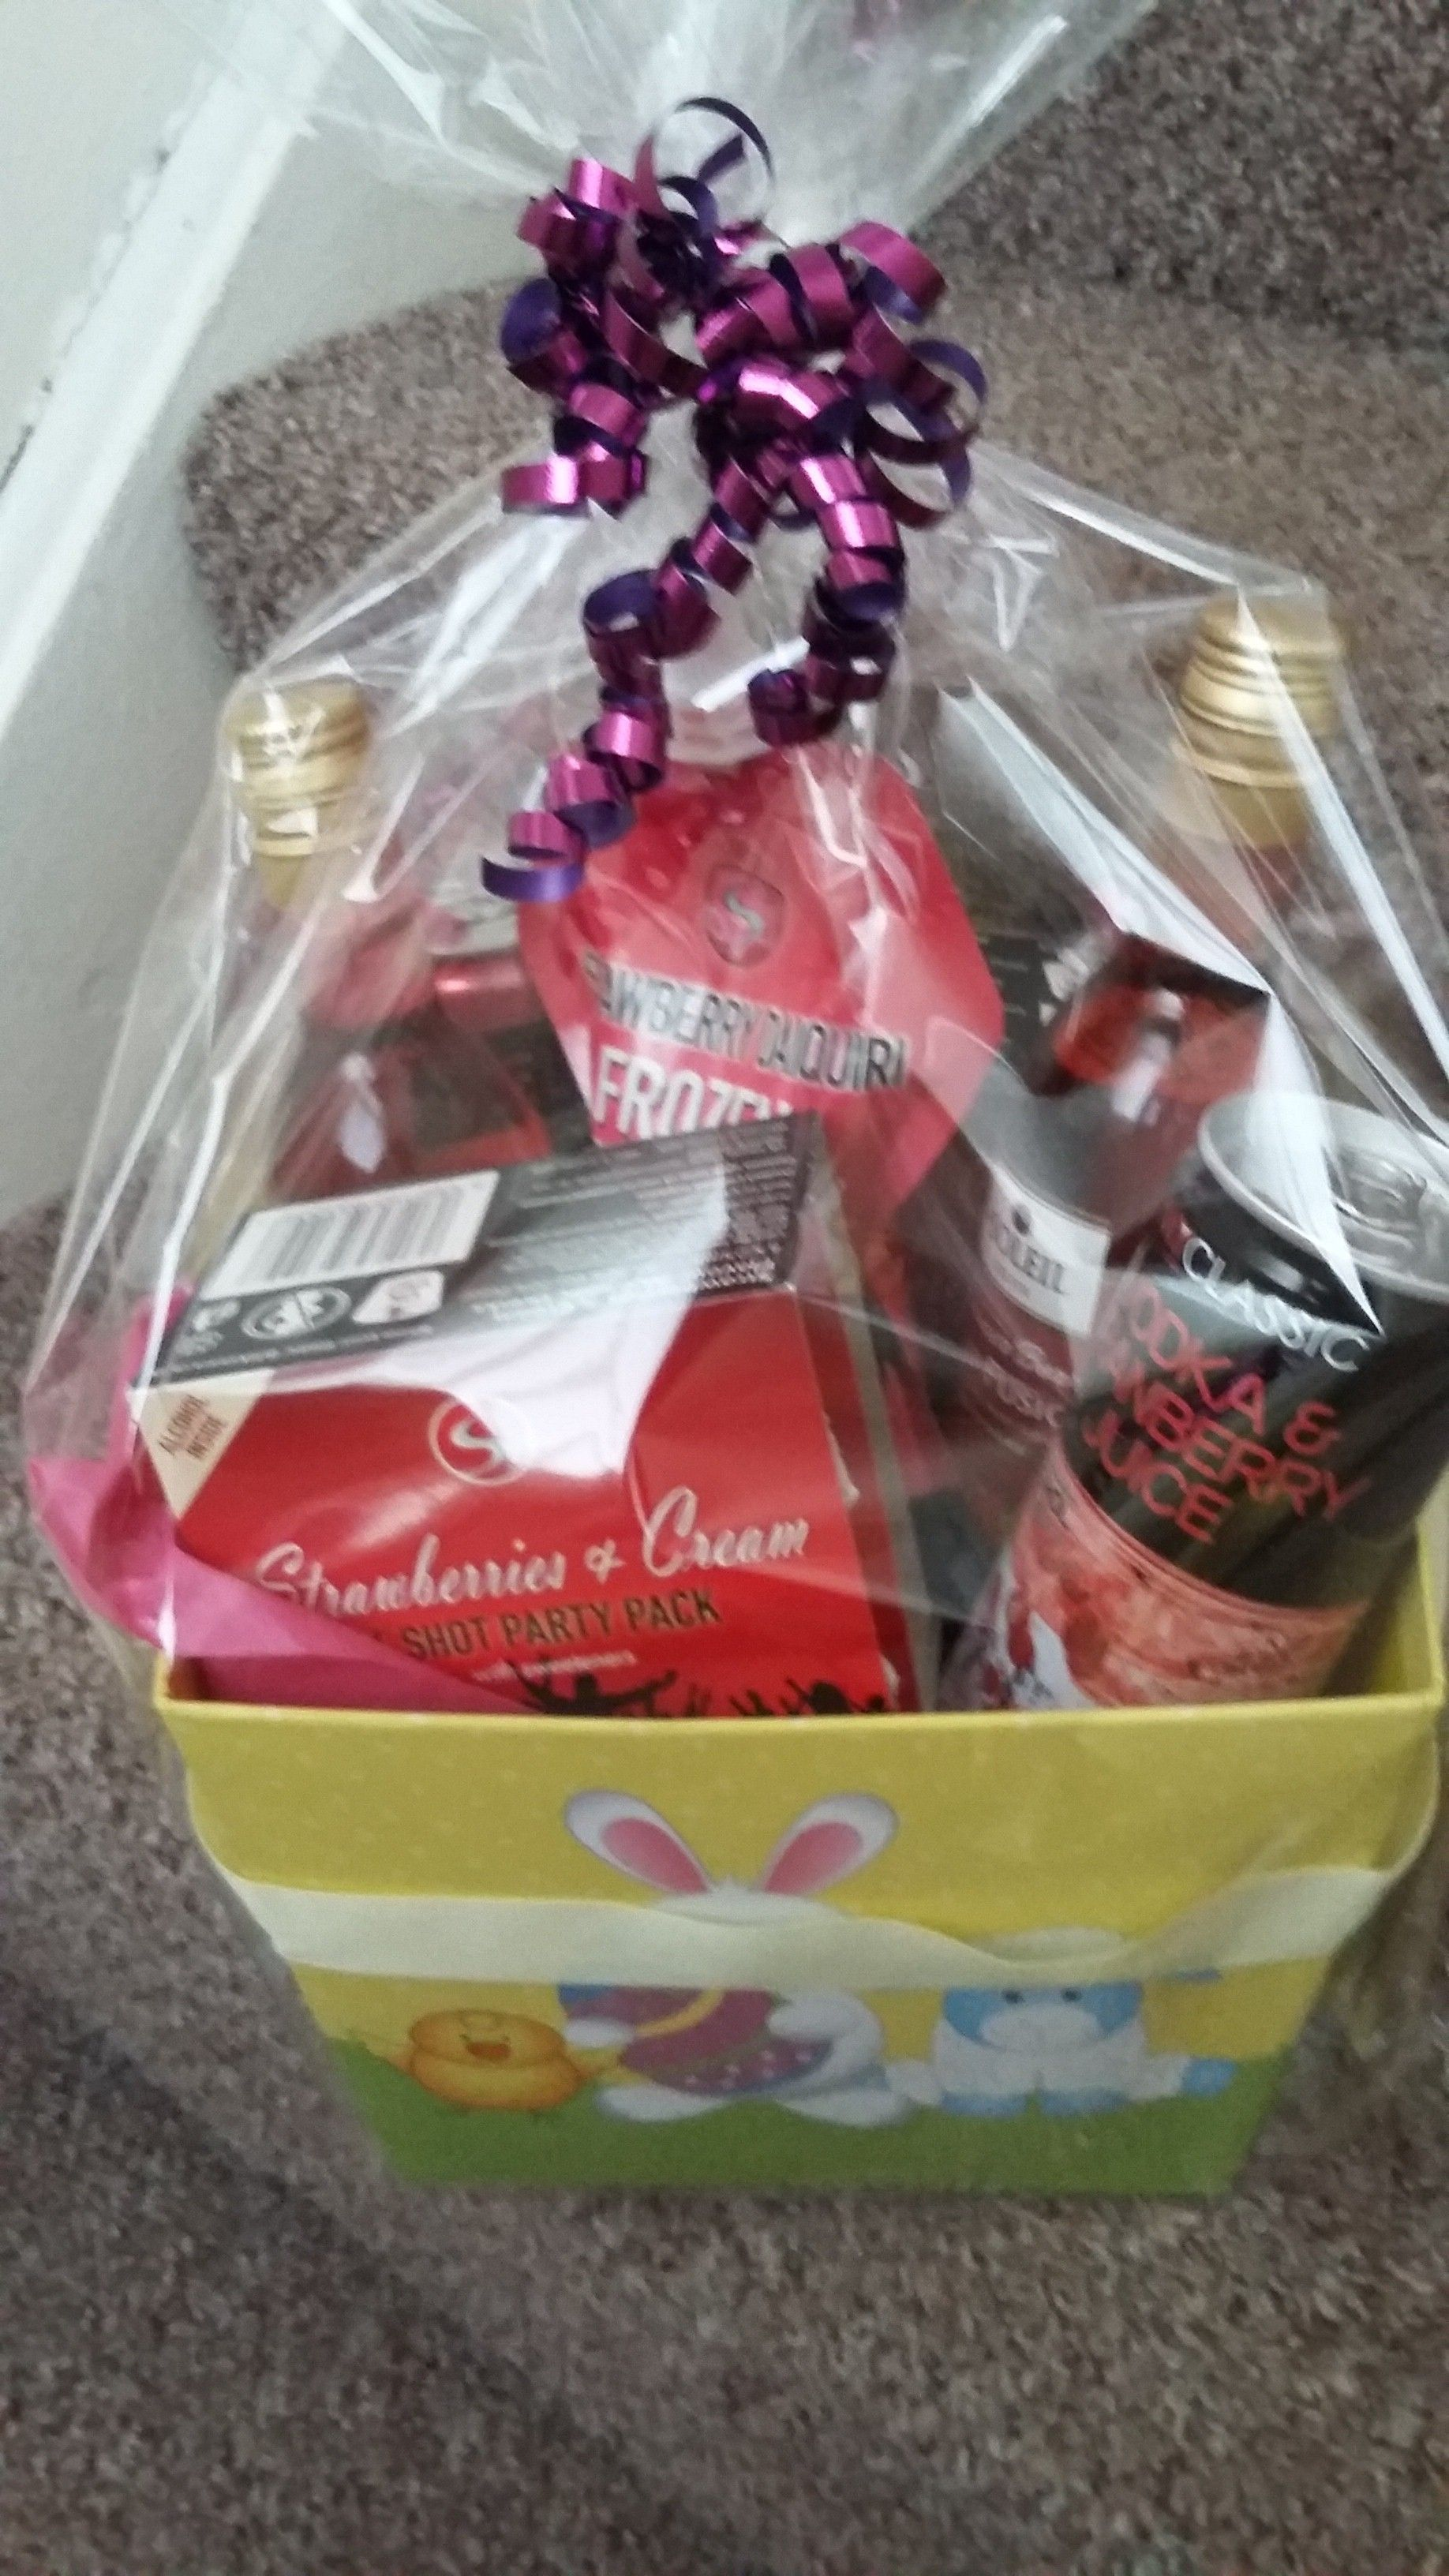 Drink Hamper For A 20 Year Old Who Has Grown Out Of Eggs But Has Discovered Drink Party Packs Gift Hampers Mason Jars